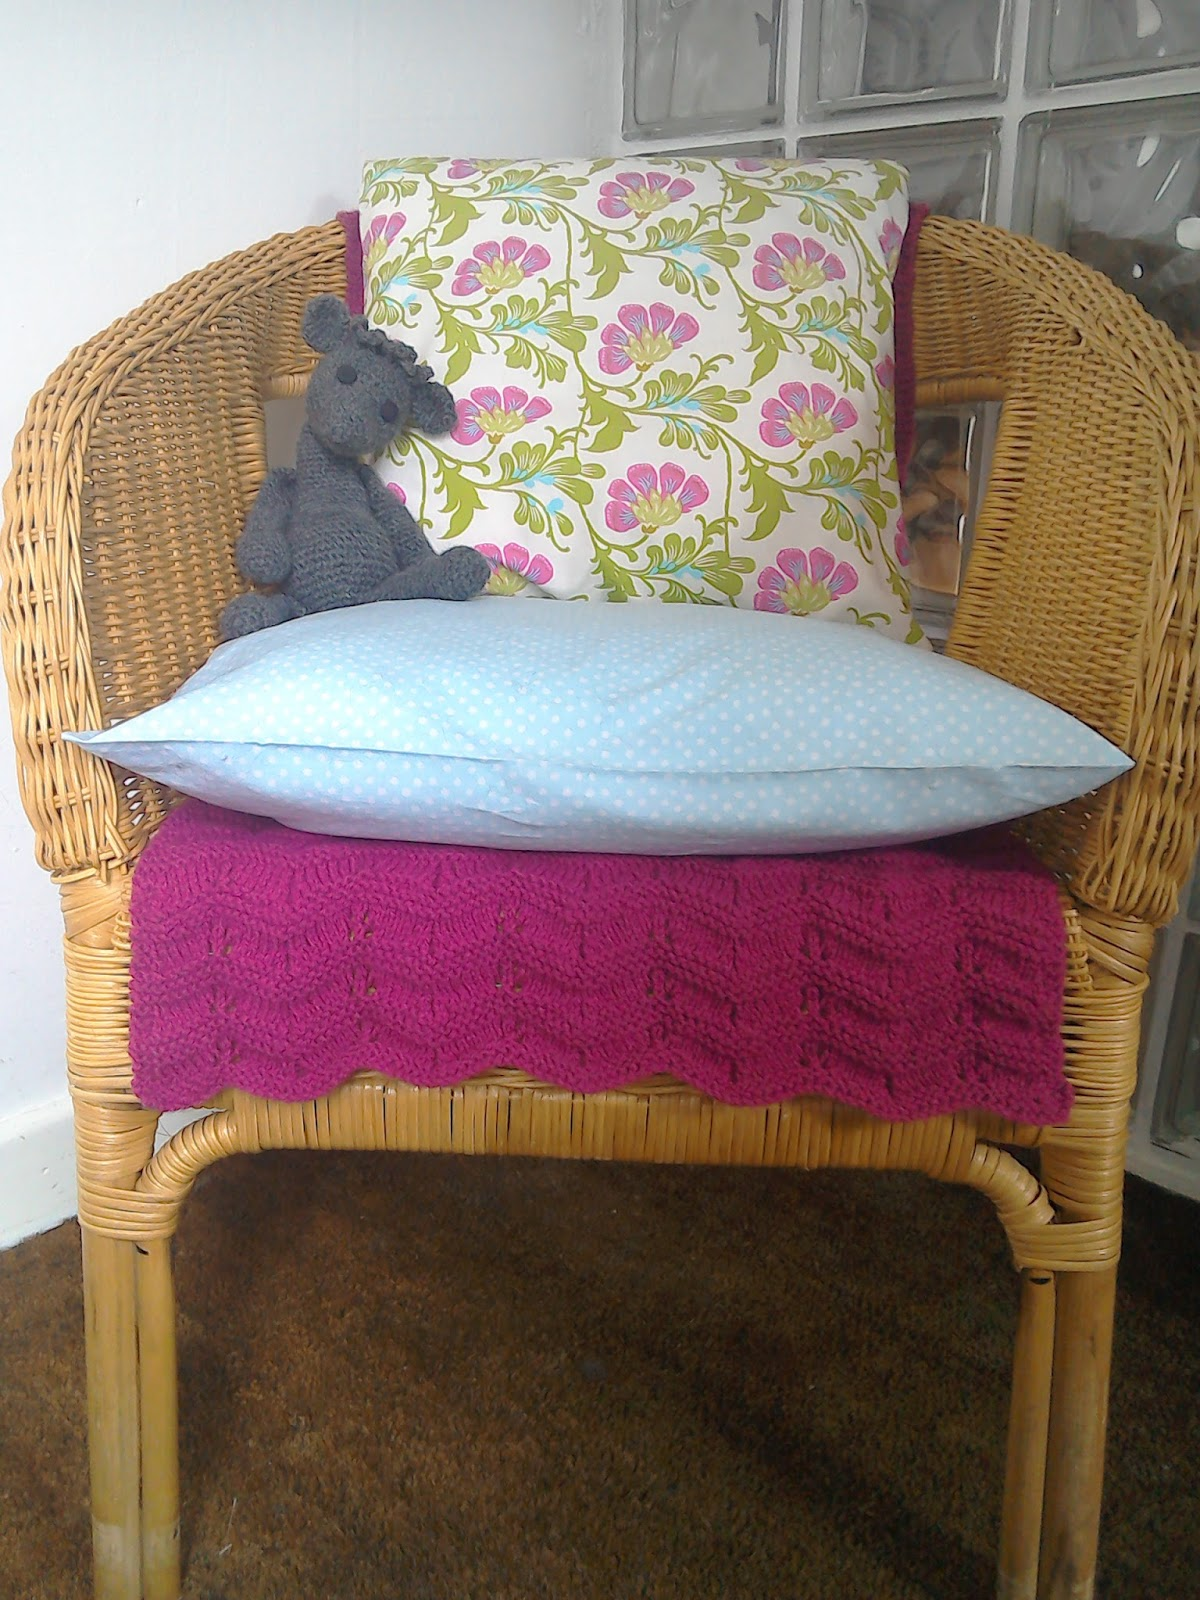 Simply Shabby Chic Chair Pads : simply in stitches: Shabby chic new look for old wicker chair